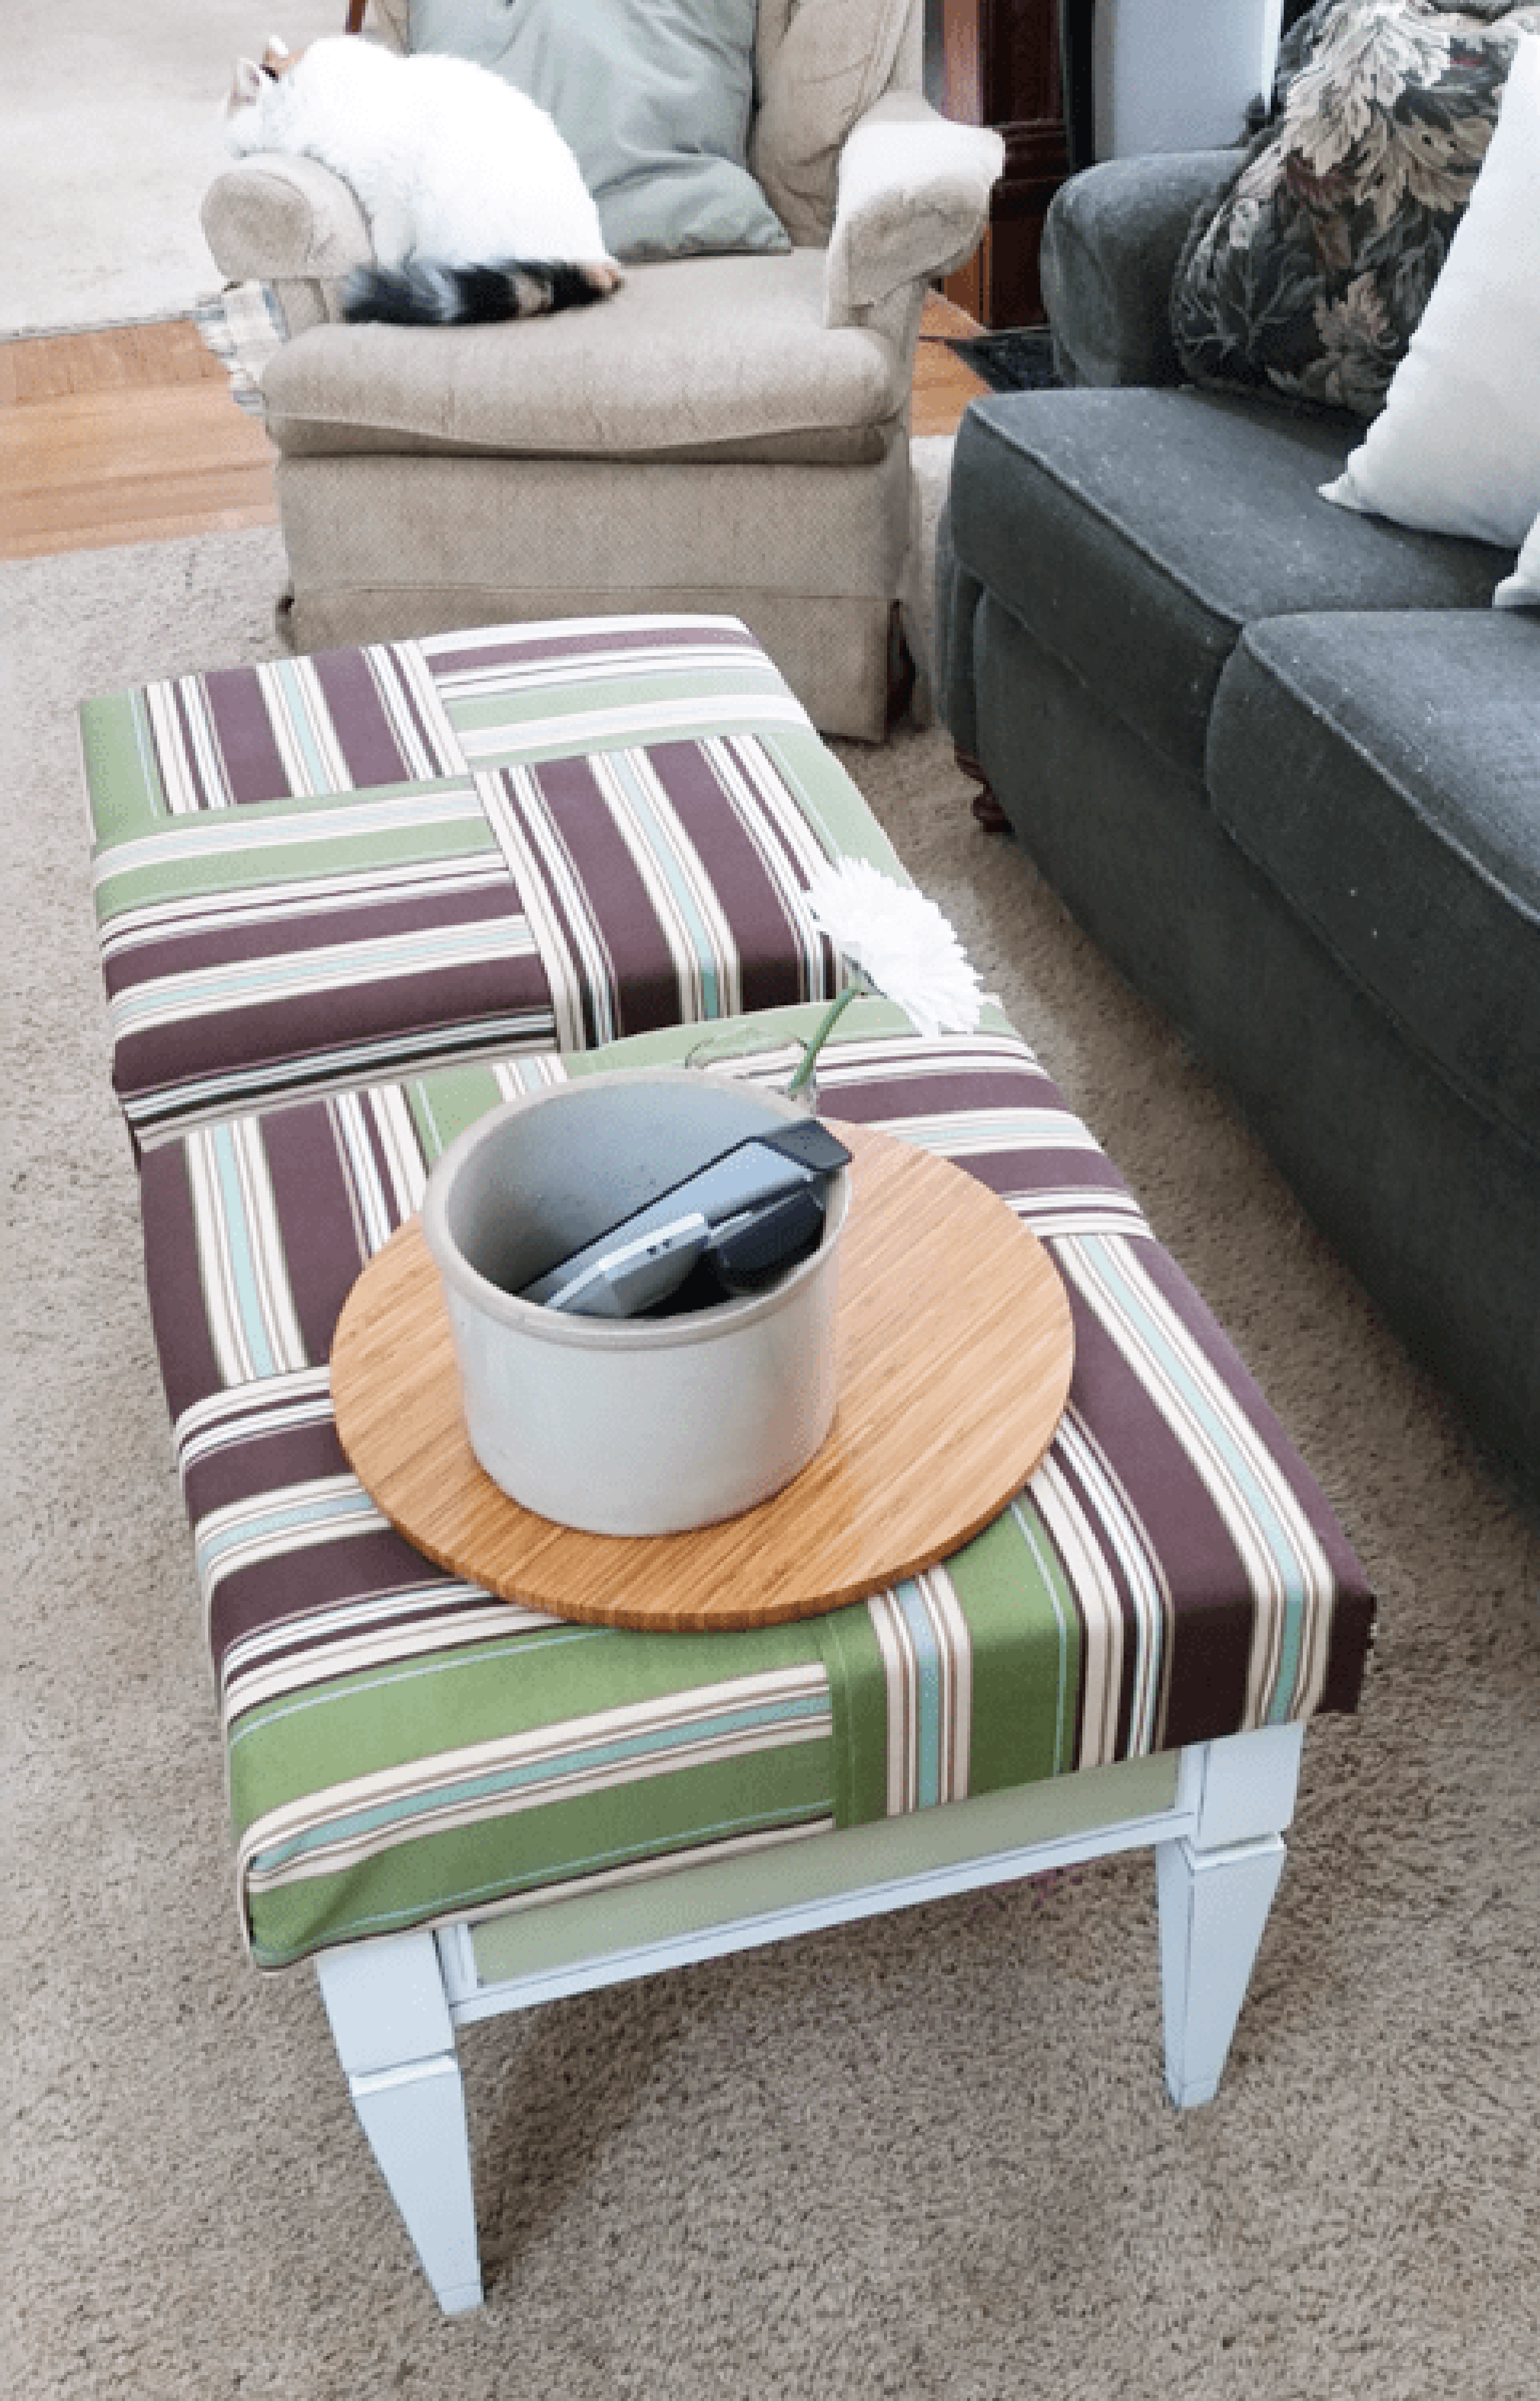 Ottoman Doubling as Coffee Table